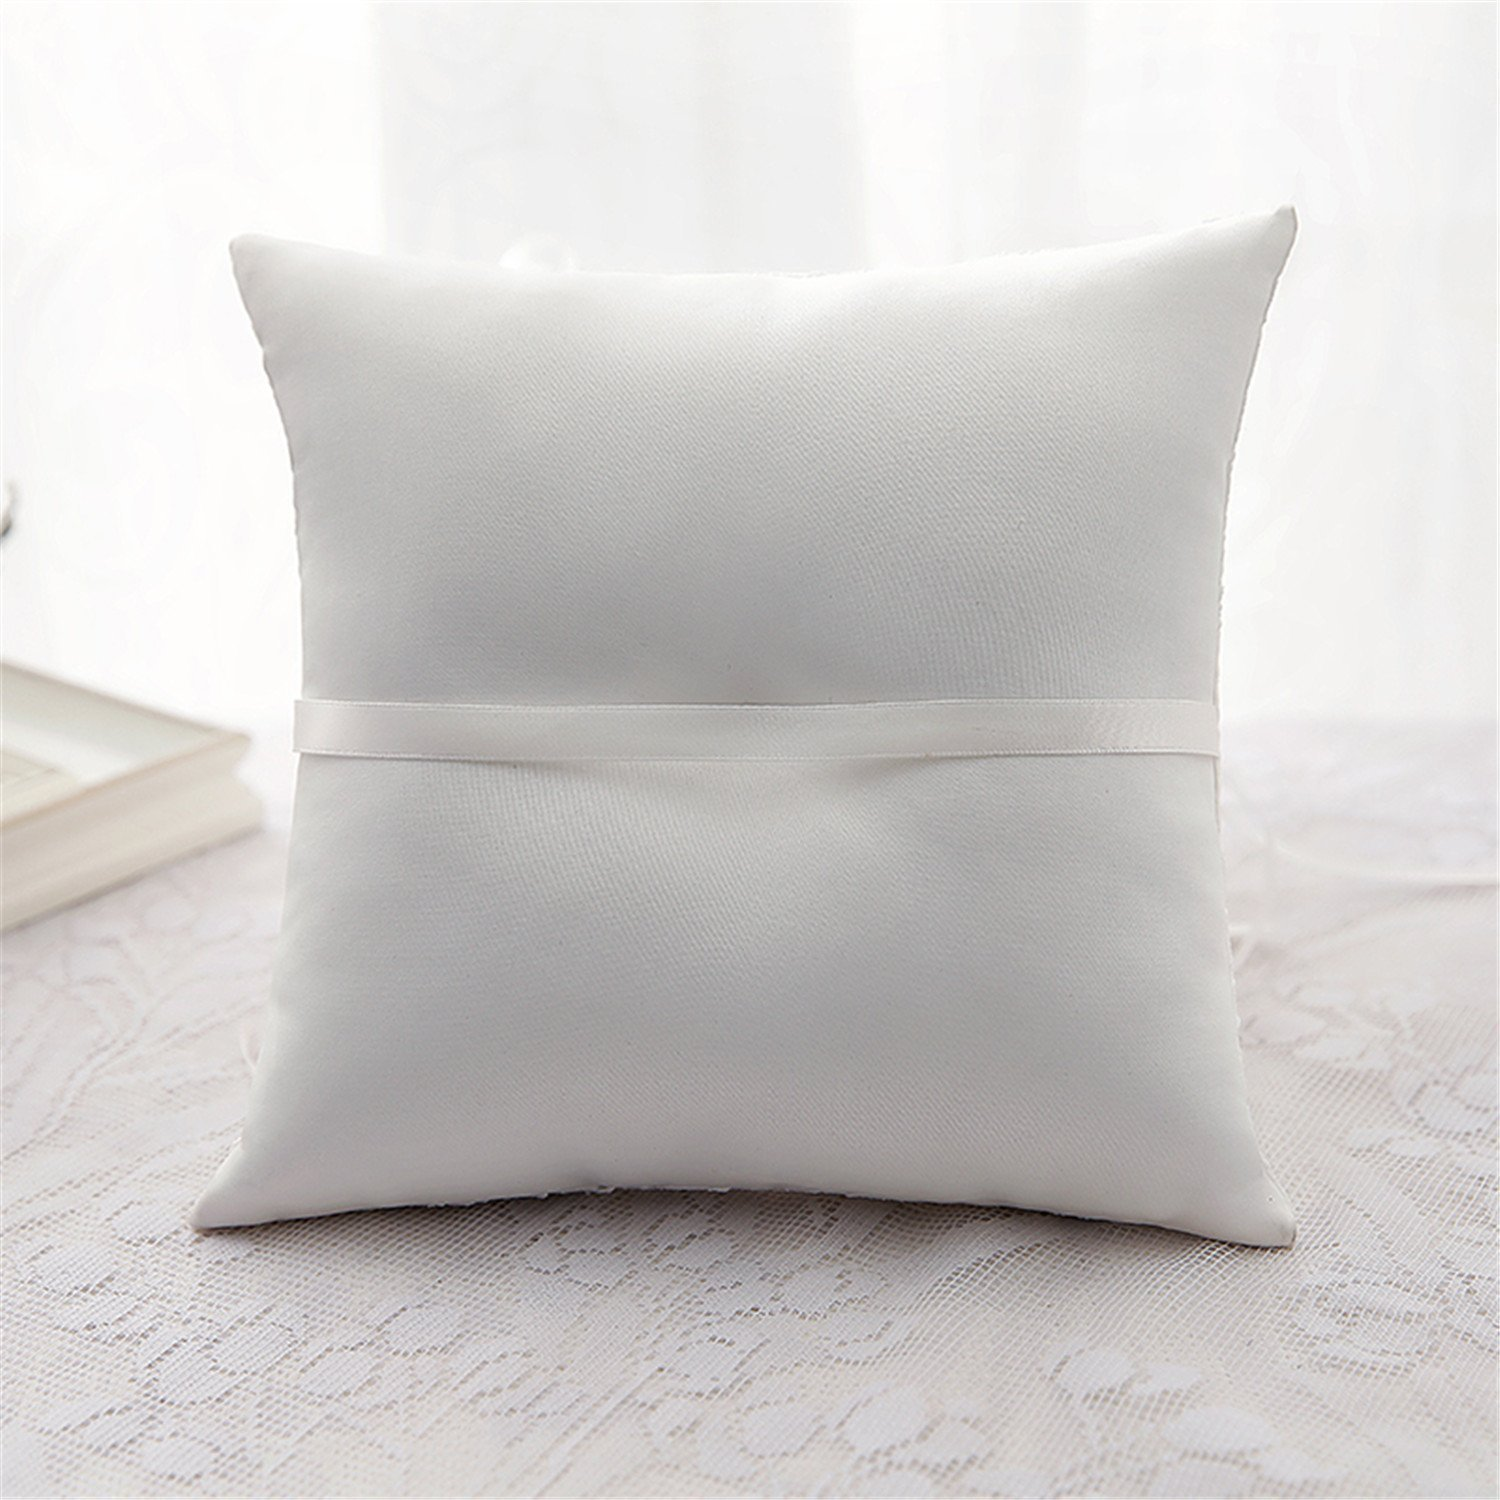 New Trends Lace wedding ring pillow wedding party Supplies wedding Ring Bearer Pillows 8.278.27Inch (Ivory) (R01) by New Trends